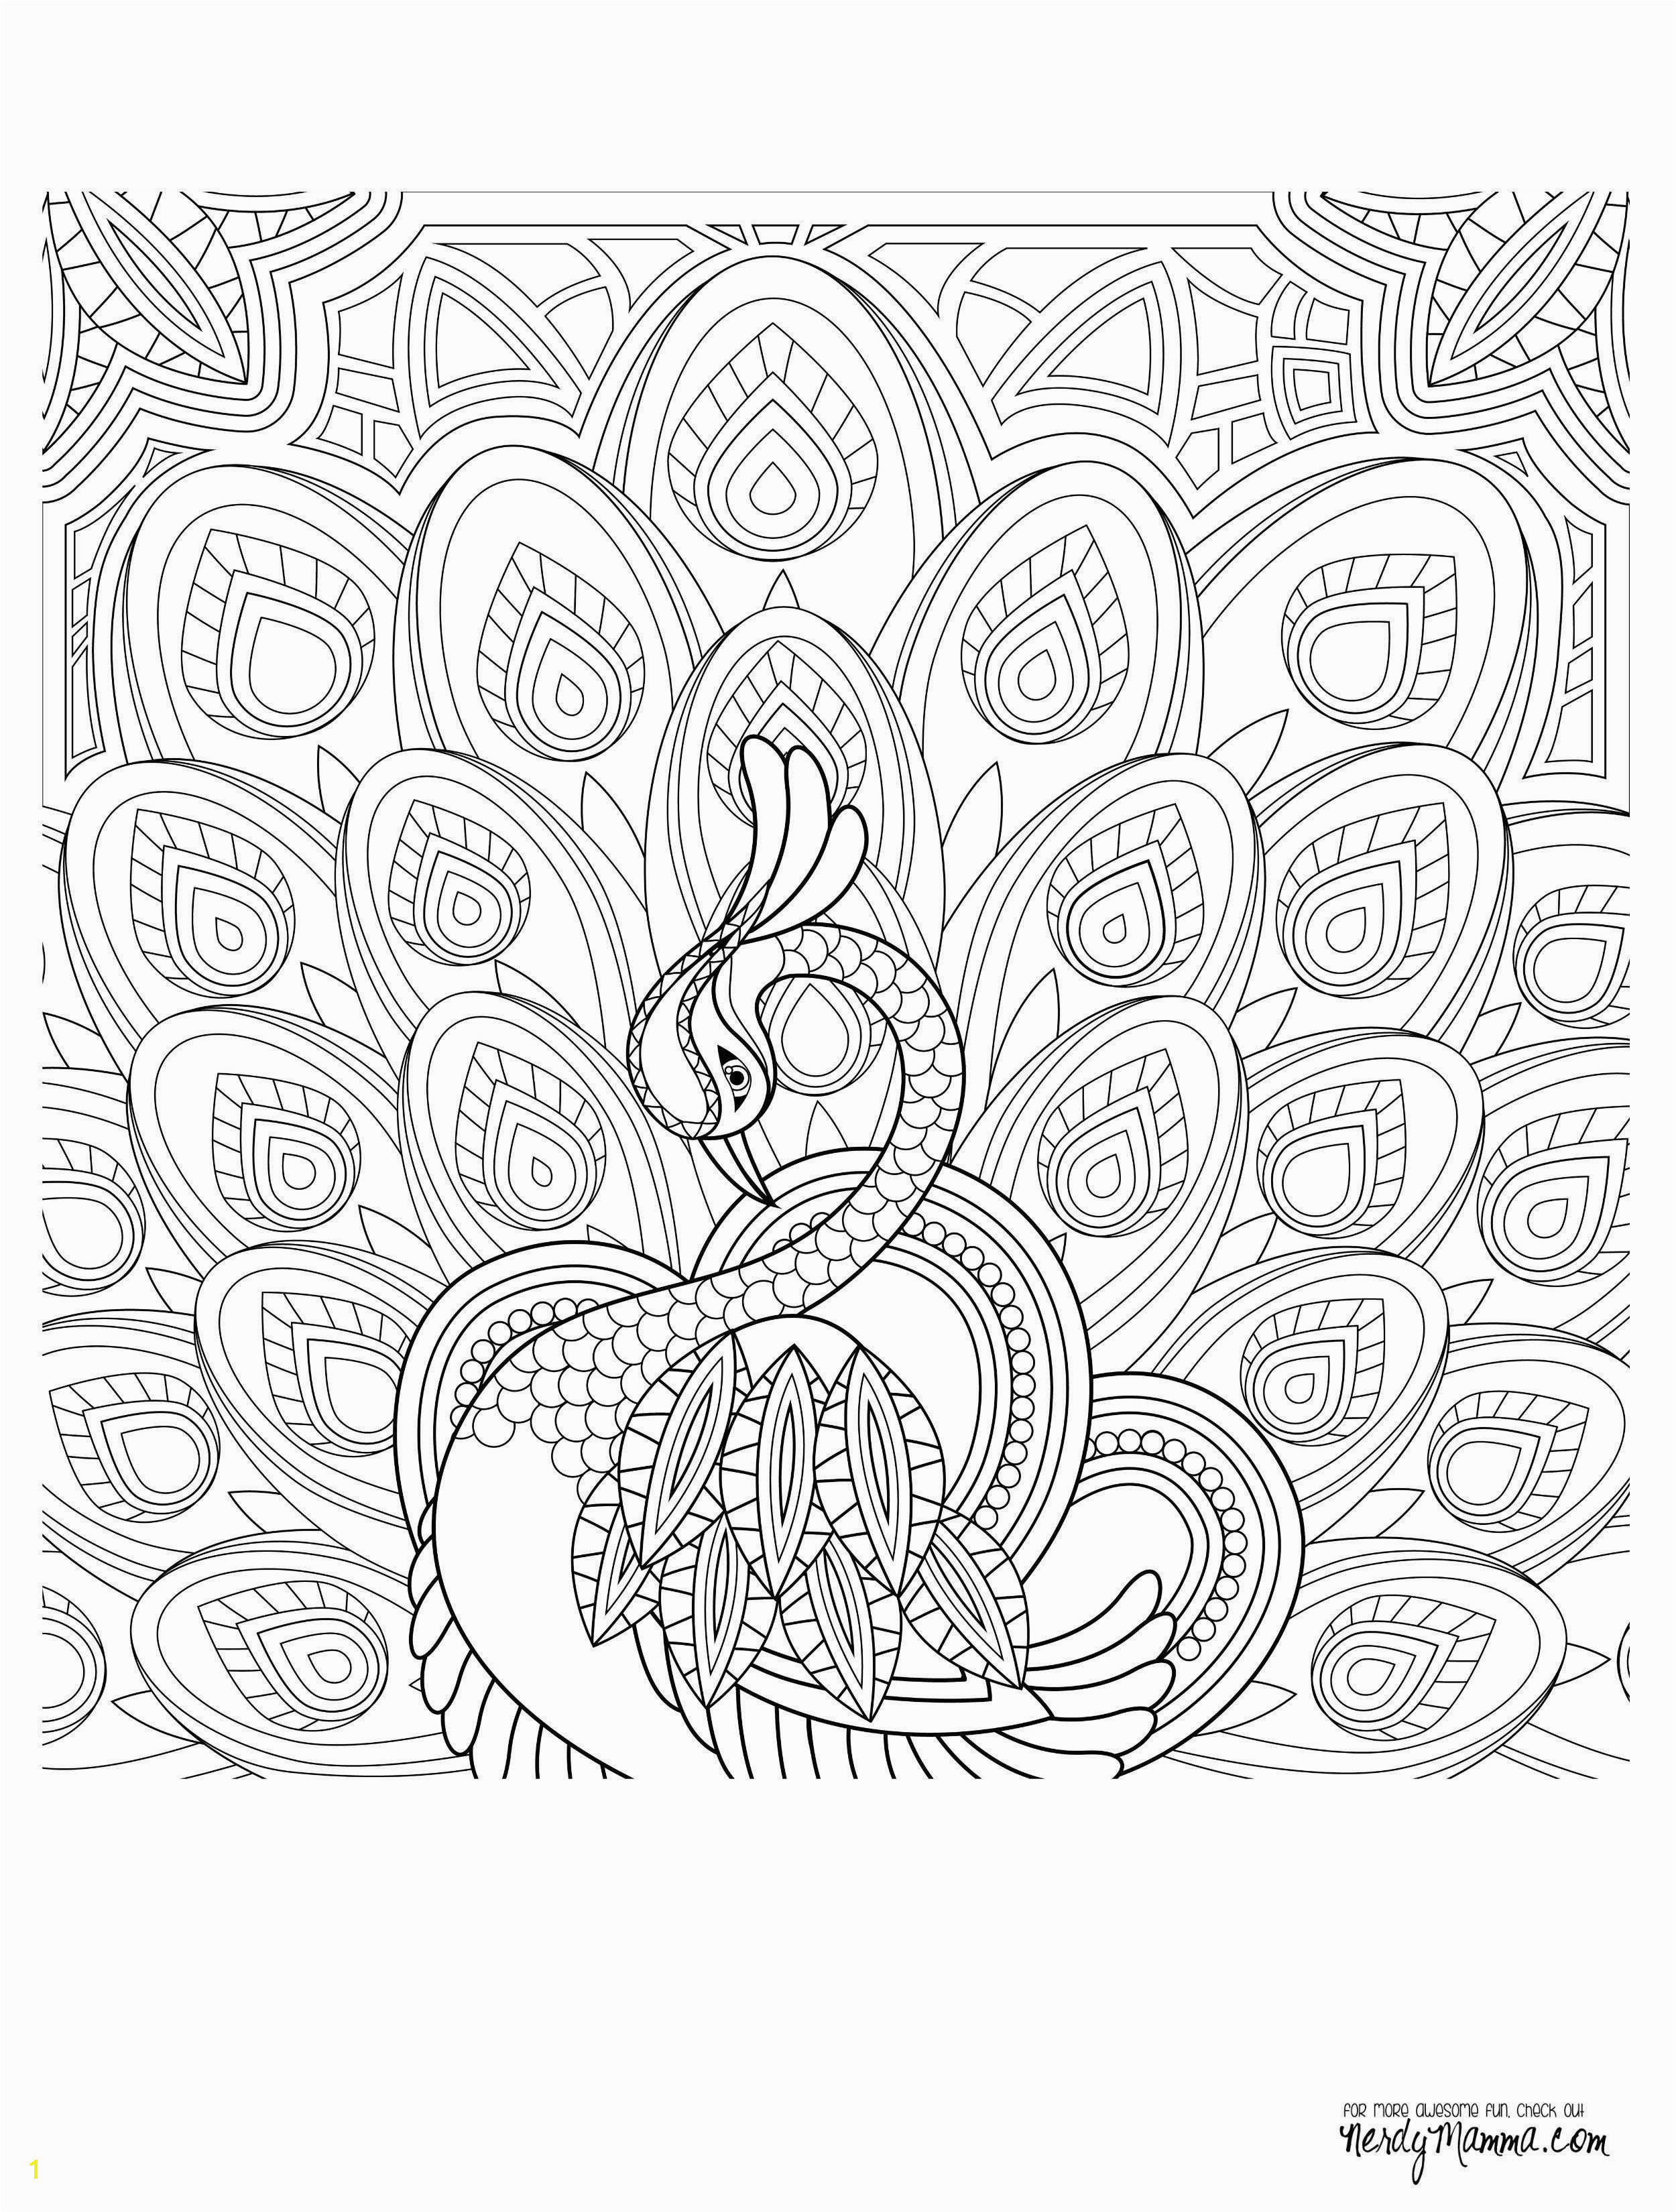 Creepy Coloring Pages Lovely Candy Coloring Pages Elegant Home Coloring Pages Best Color Sheet 0d